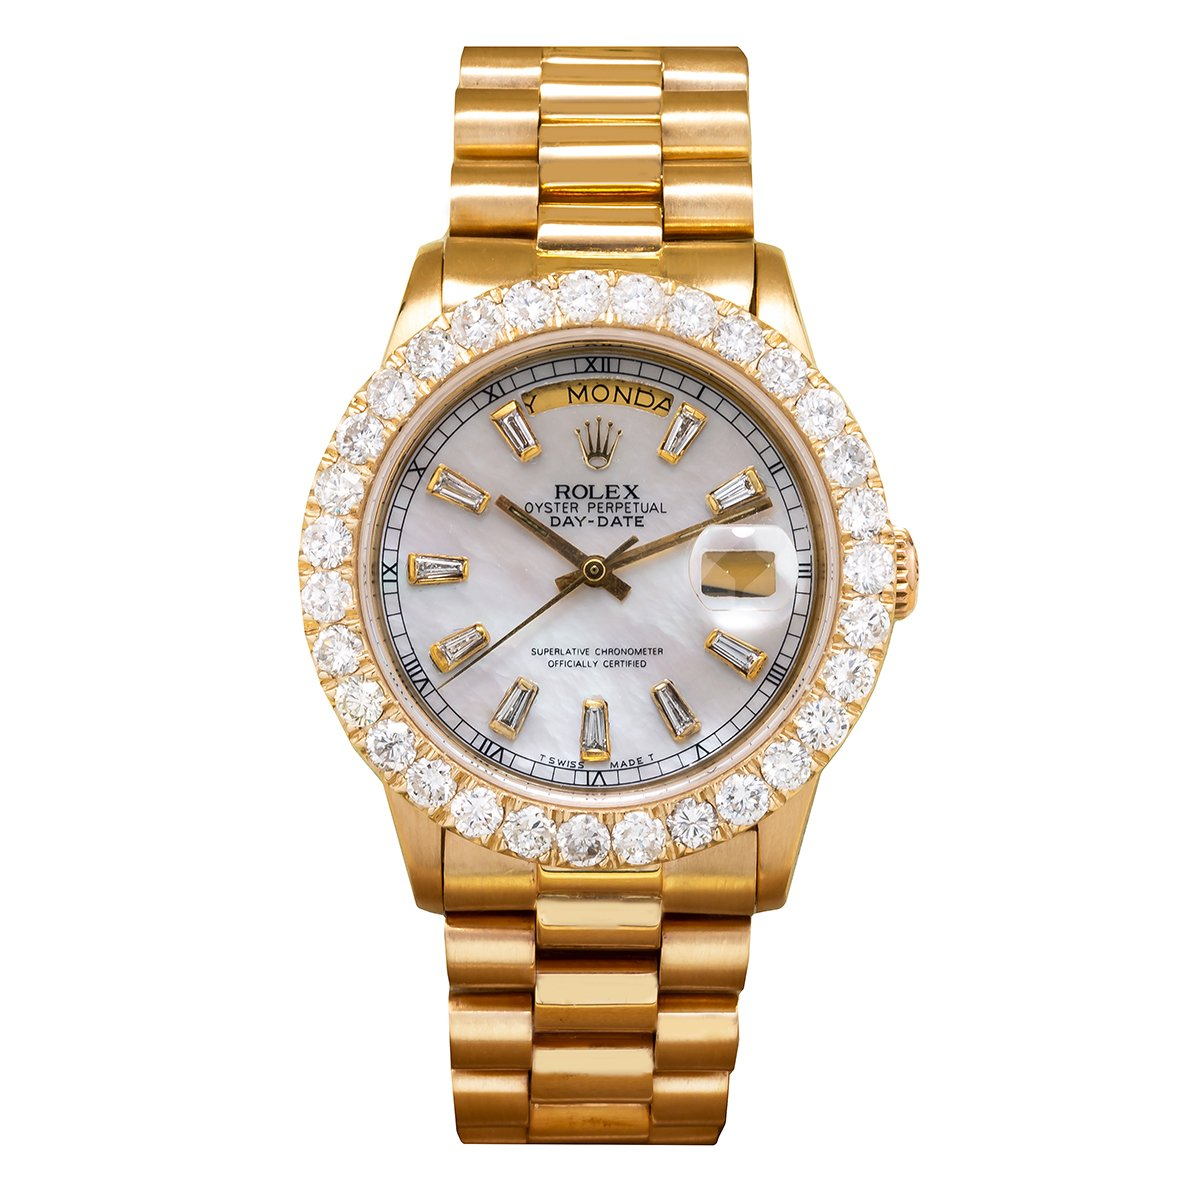 18K Yellow Gold Rolex Diamond Watch, Day-Date 8038 36mm, White Mother Of Pearl Dial With 4.75CT Diamond Bezel